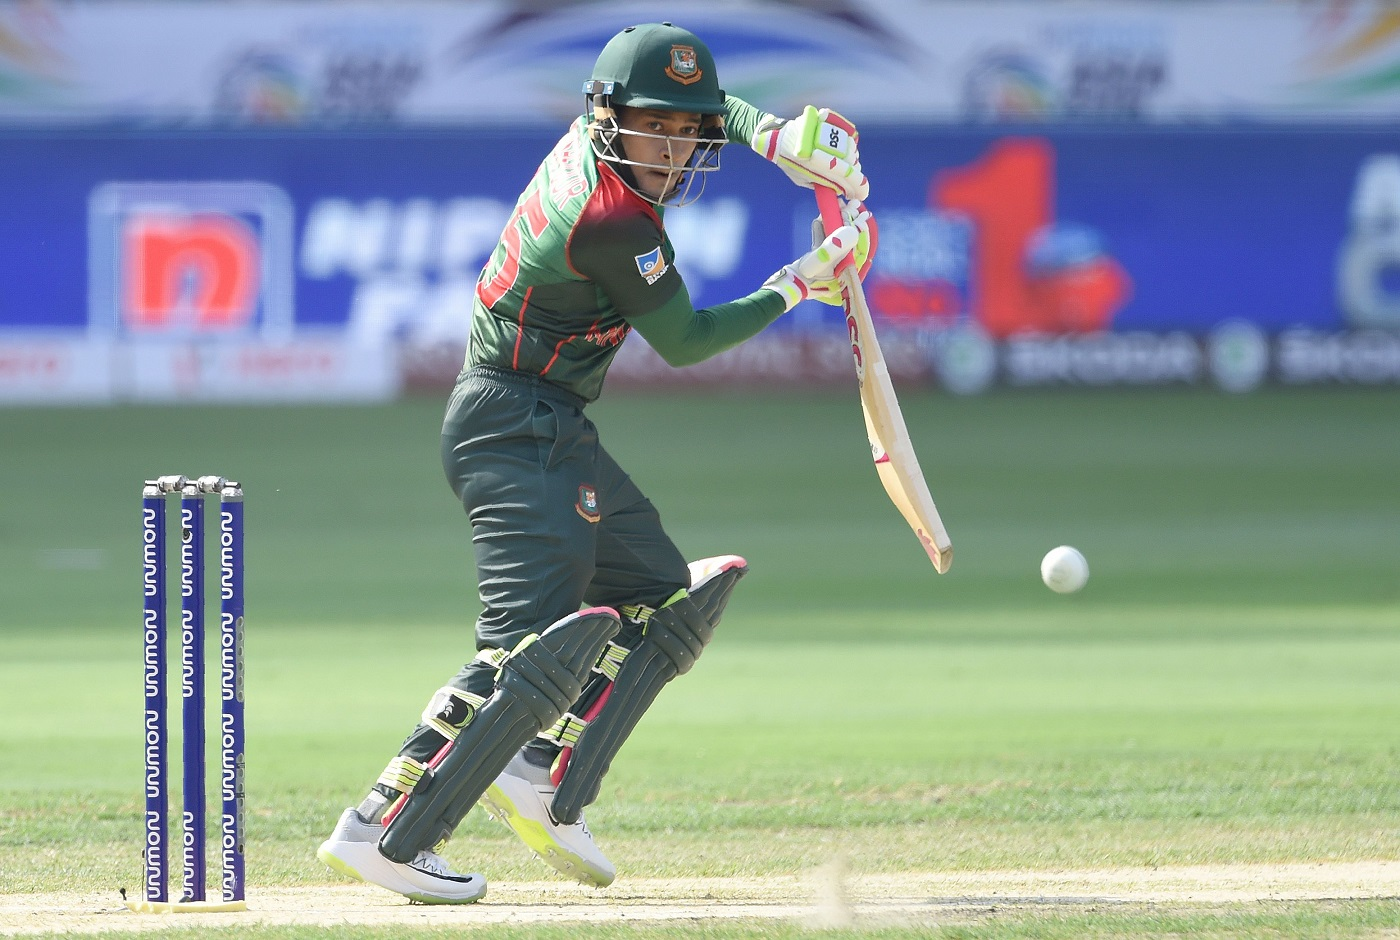 Watch: Livid Mushfiqur Rahim Gives Rubel Hossain An Earful For Not Reviewing A Decision